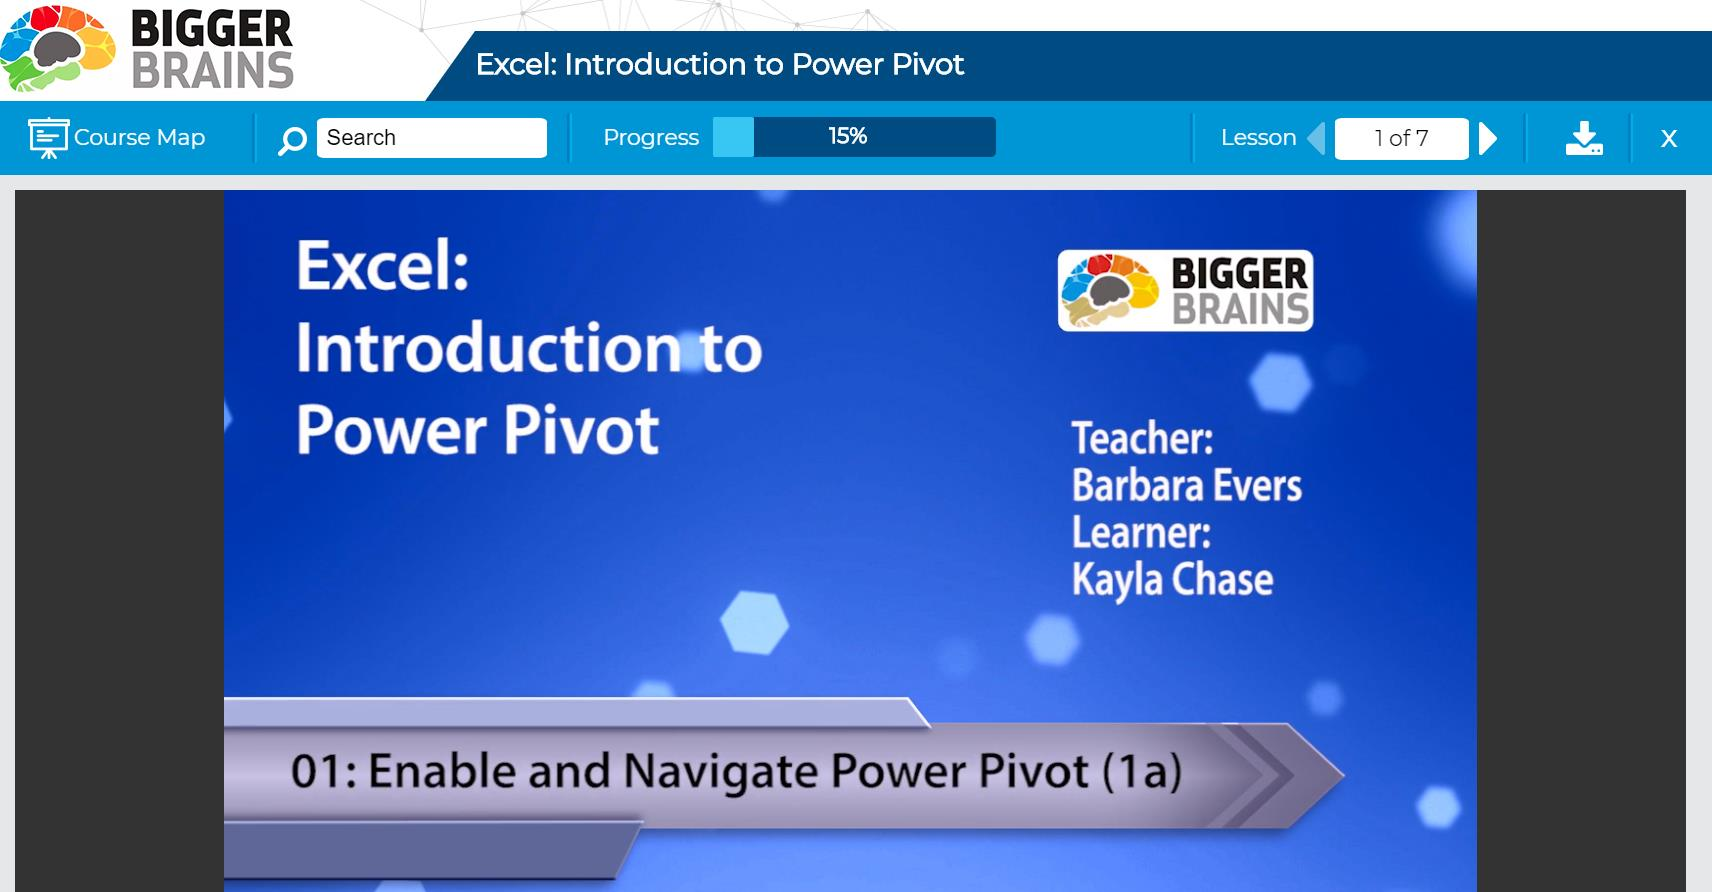 Excel-Introduction-to-PowerPivot.jpg